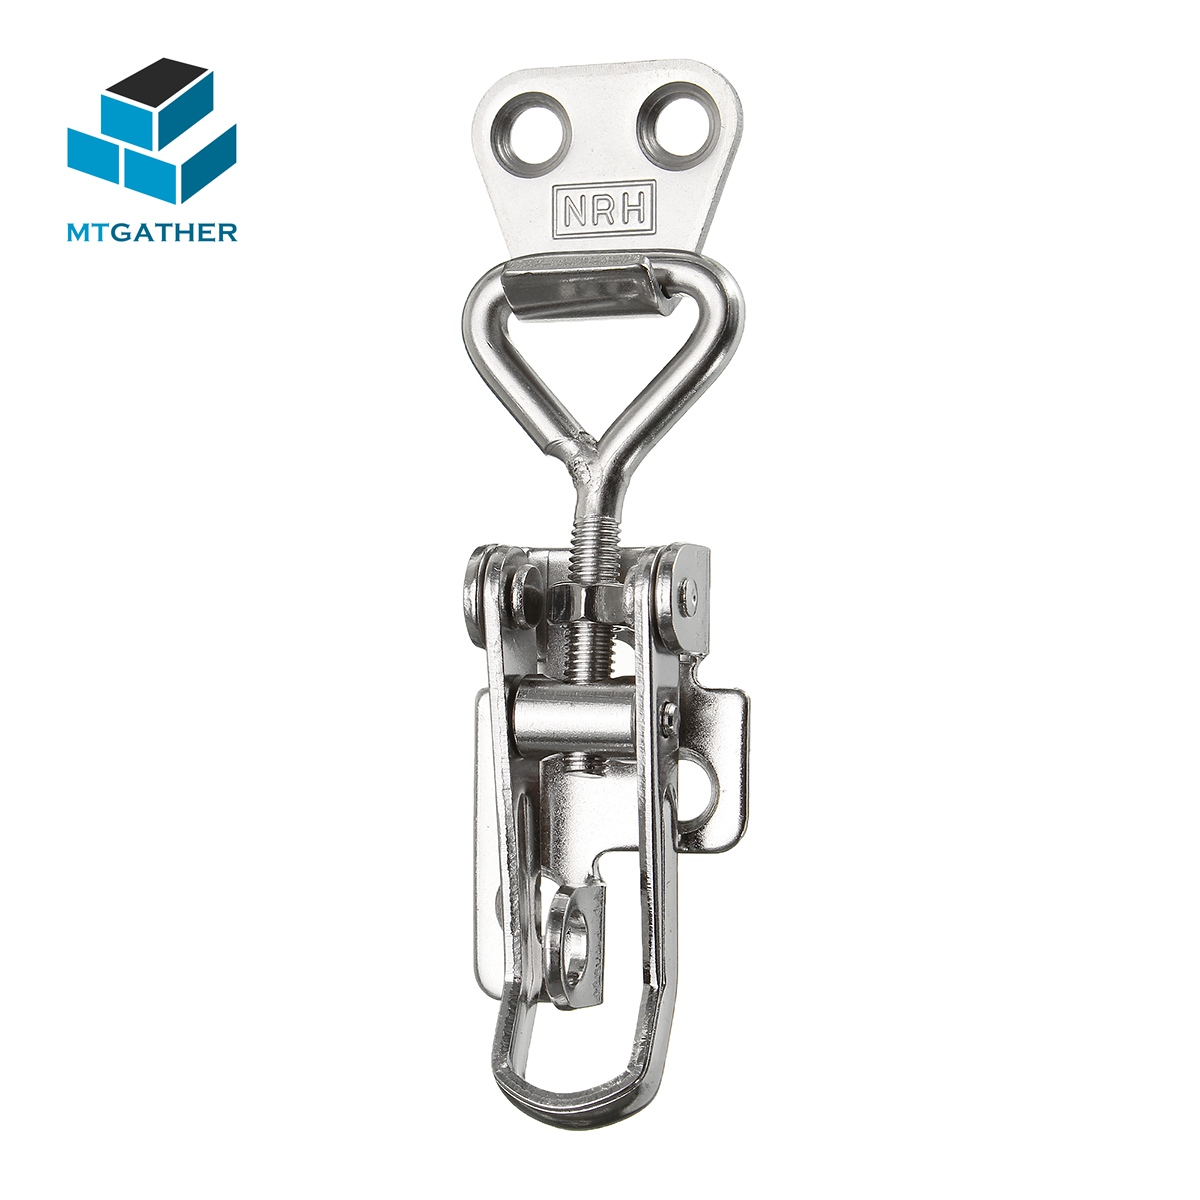 MTGATHER Hasps Spring Loaded Toggle Case Box Chest Trunk Latch Catches Hasp Durable 304 Stainless Steel For Windows Doors Boxs